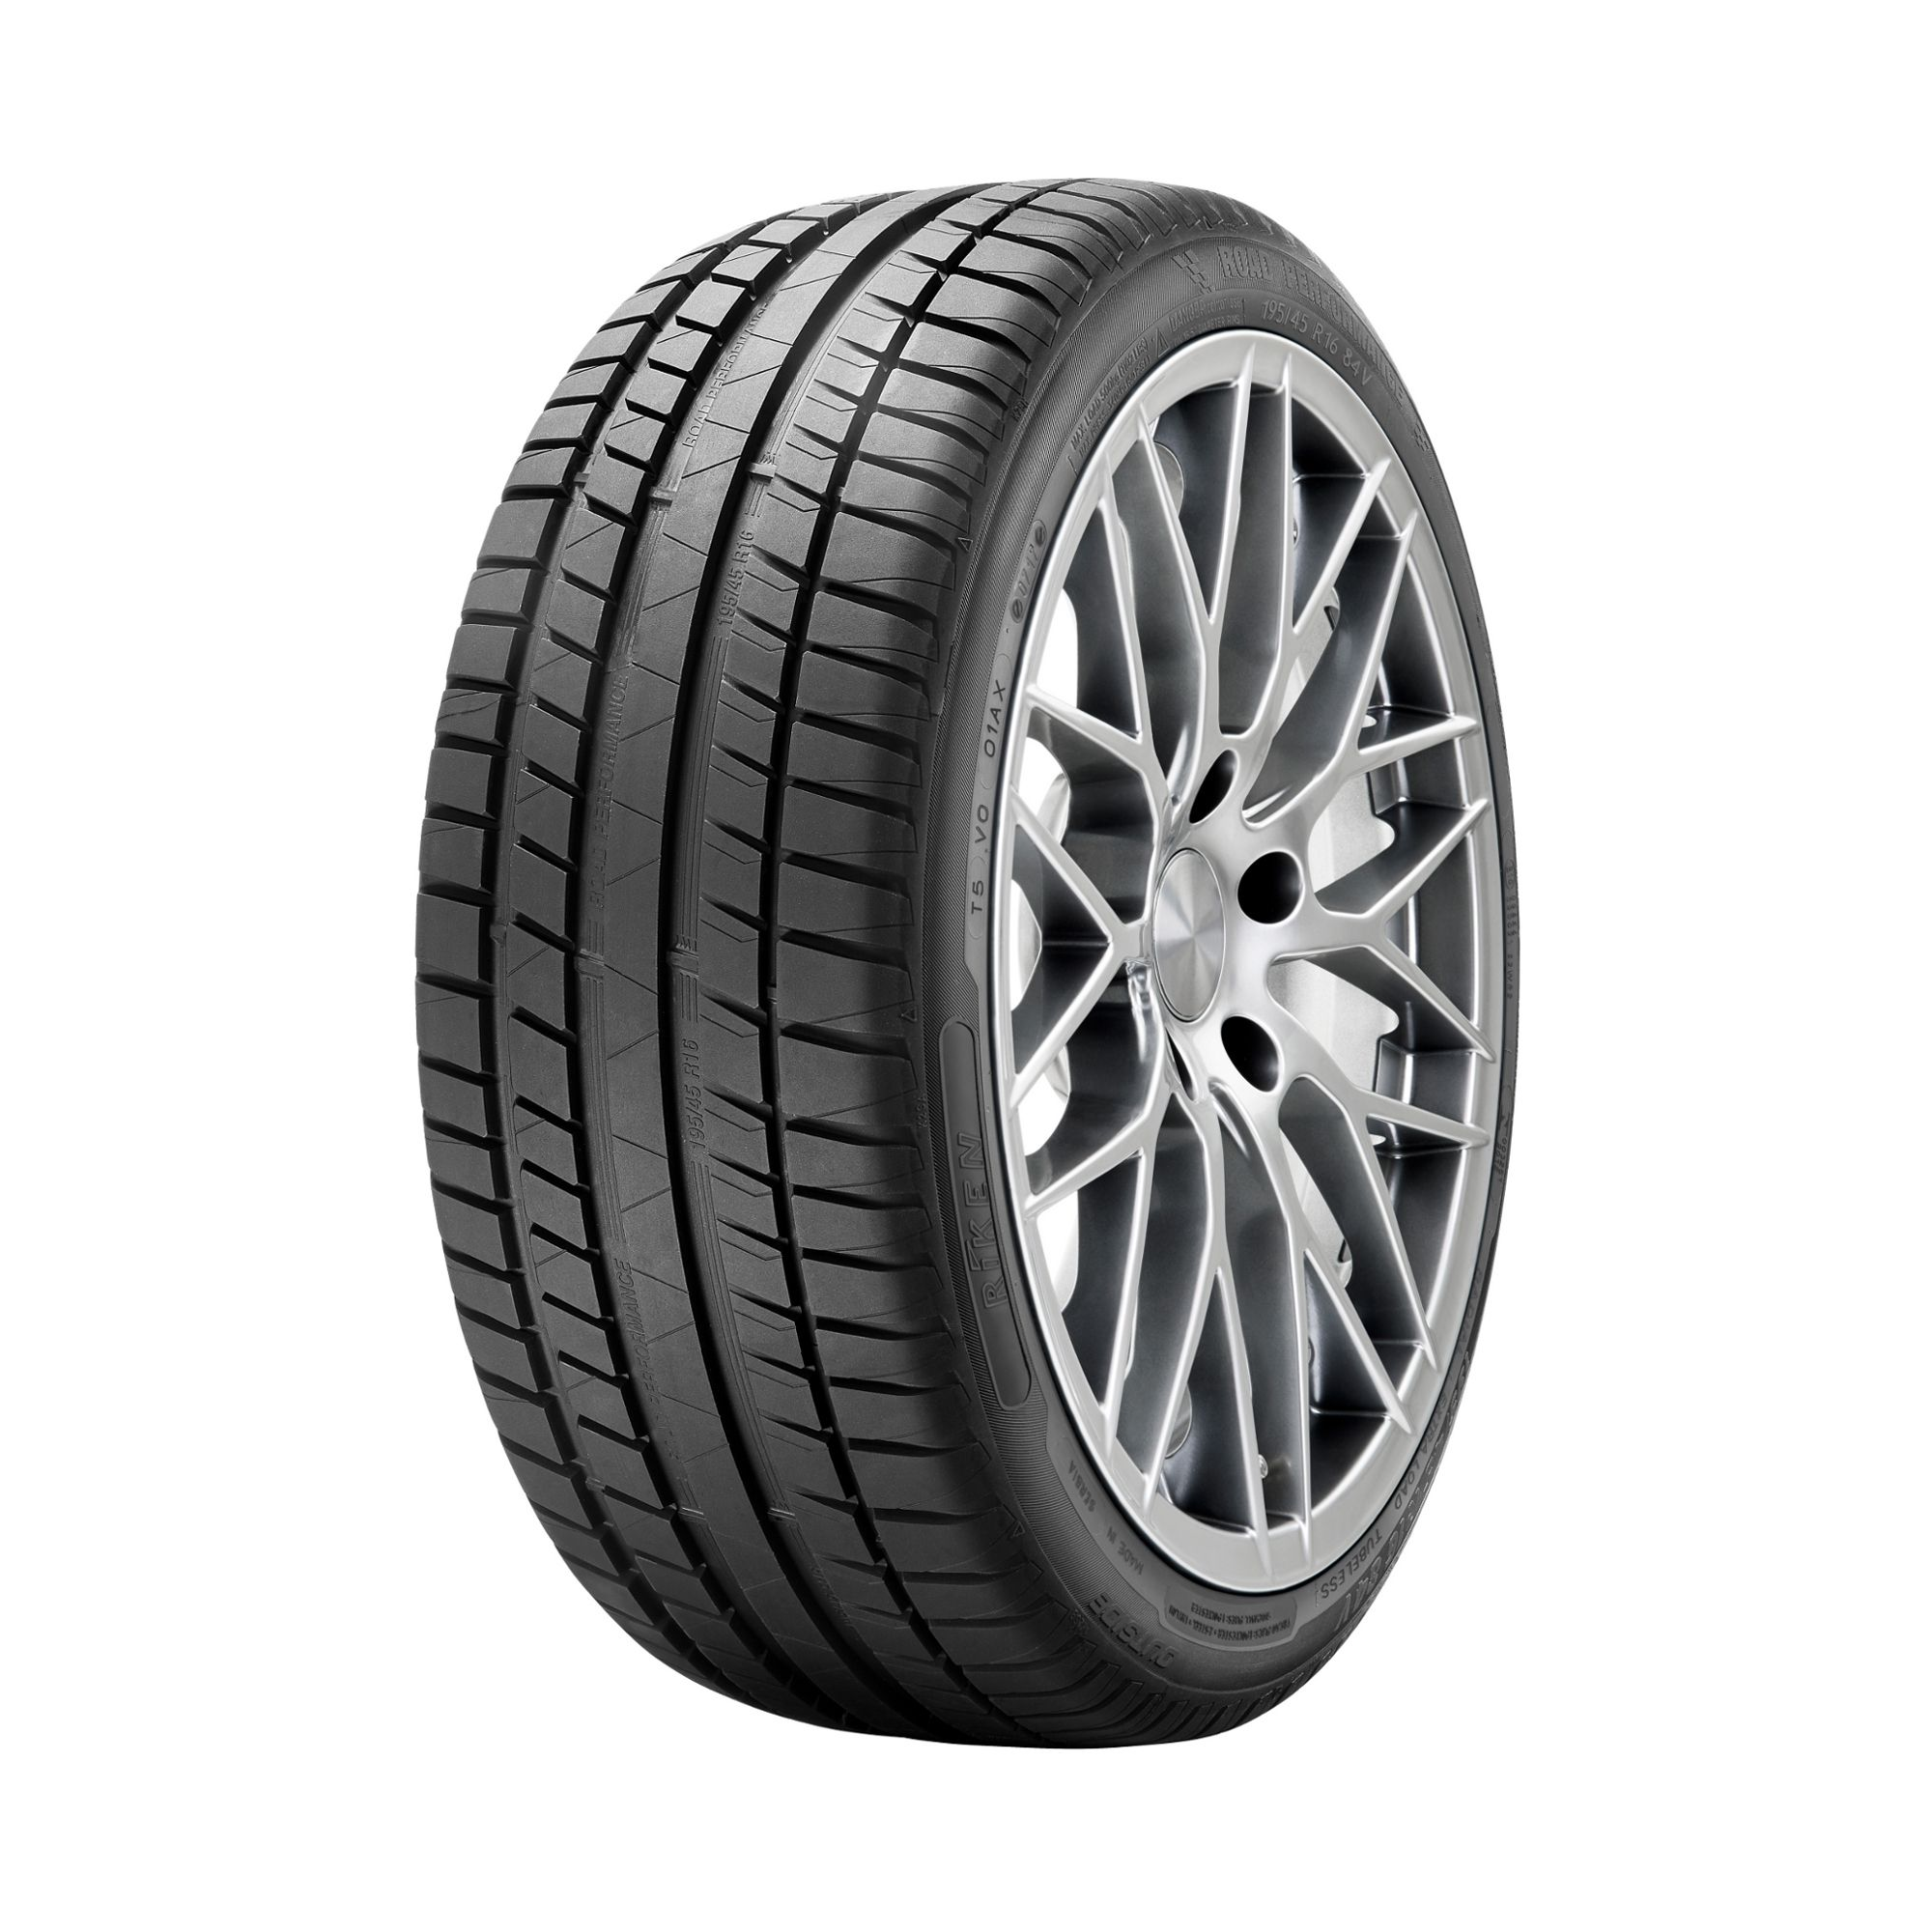 Anvelopa vara RIKEN Road Performance(by Michelin) 195/65 R15 91V